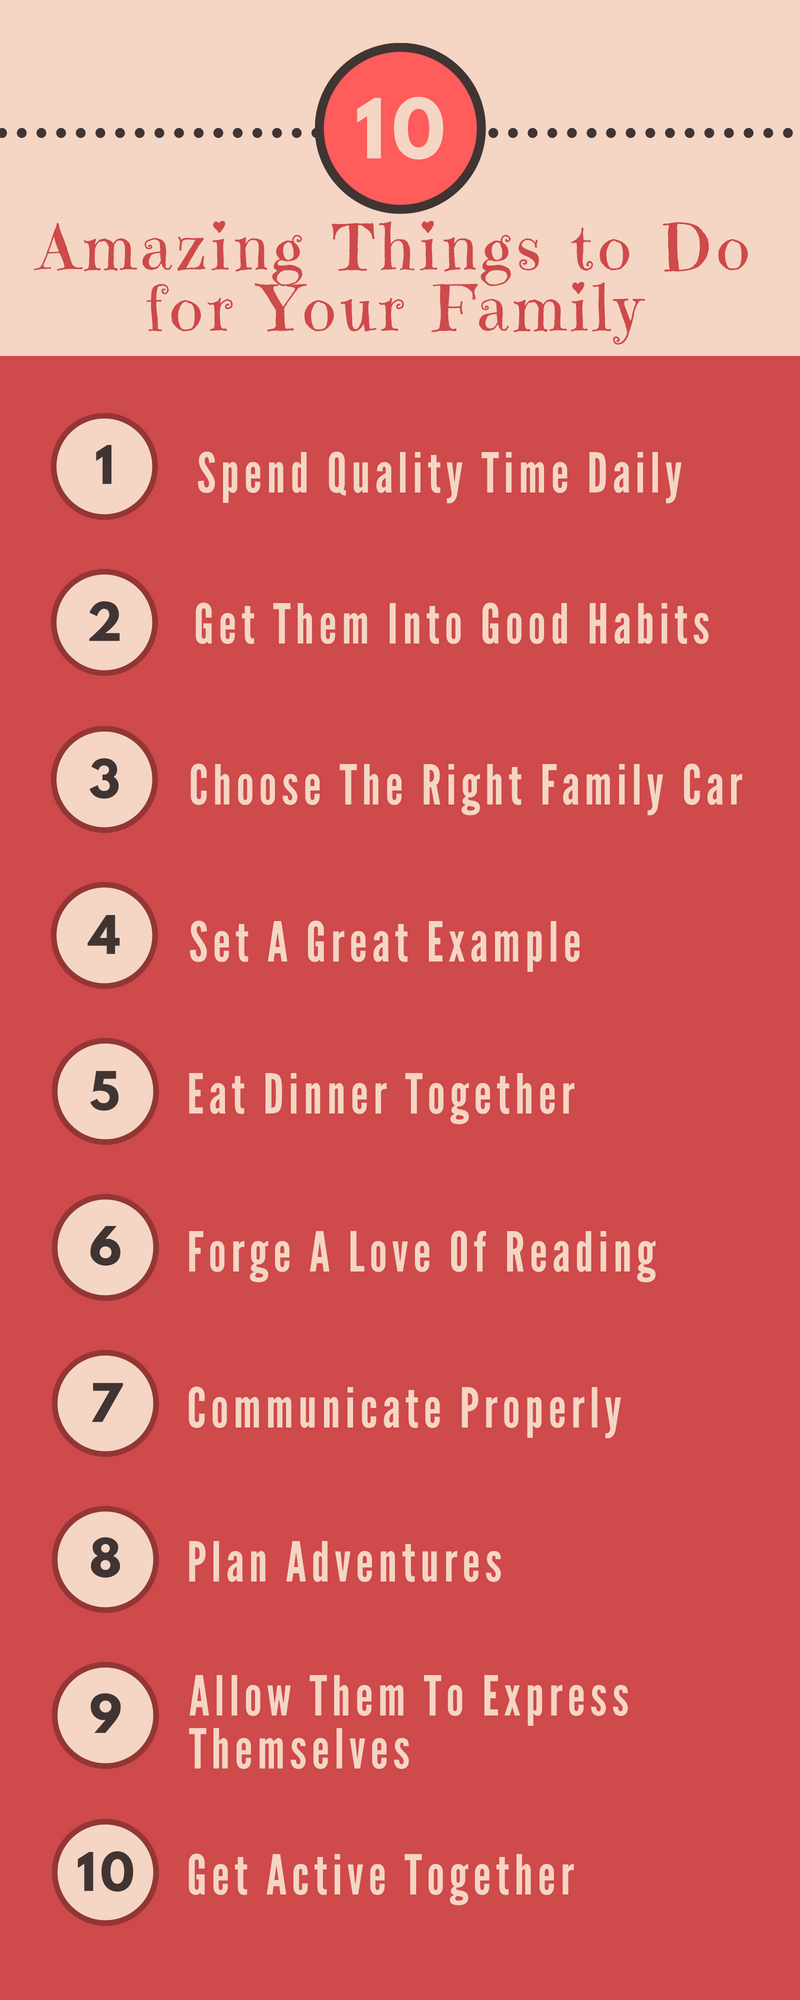 Enjoyed this list? Read deeper and find 5 more amazing things to do for your family on inspiringmompreneurs. #thingstodoforyourfamily